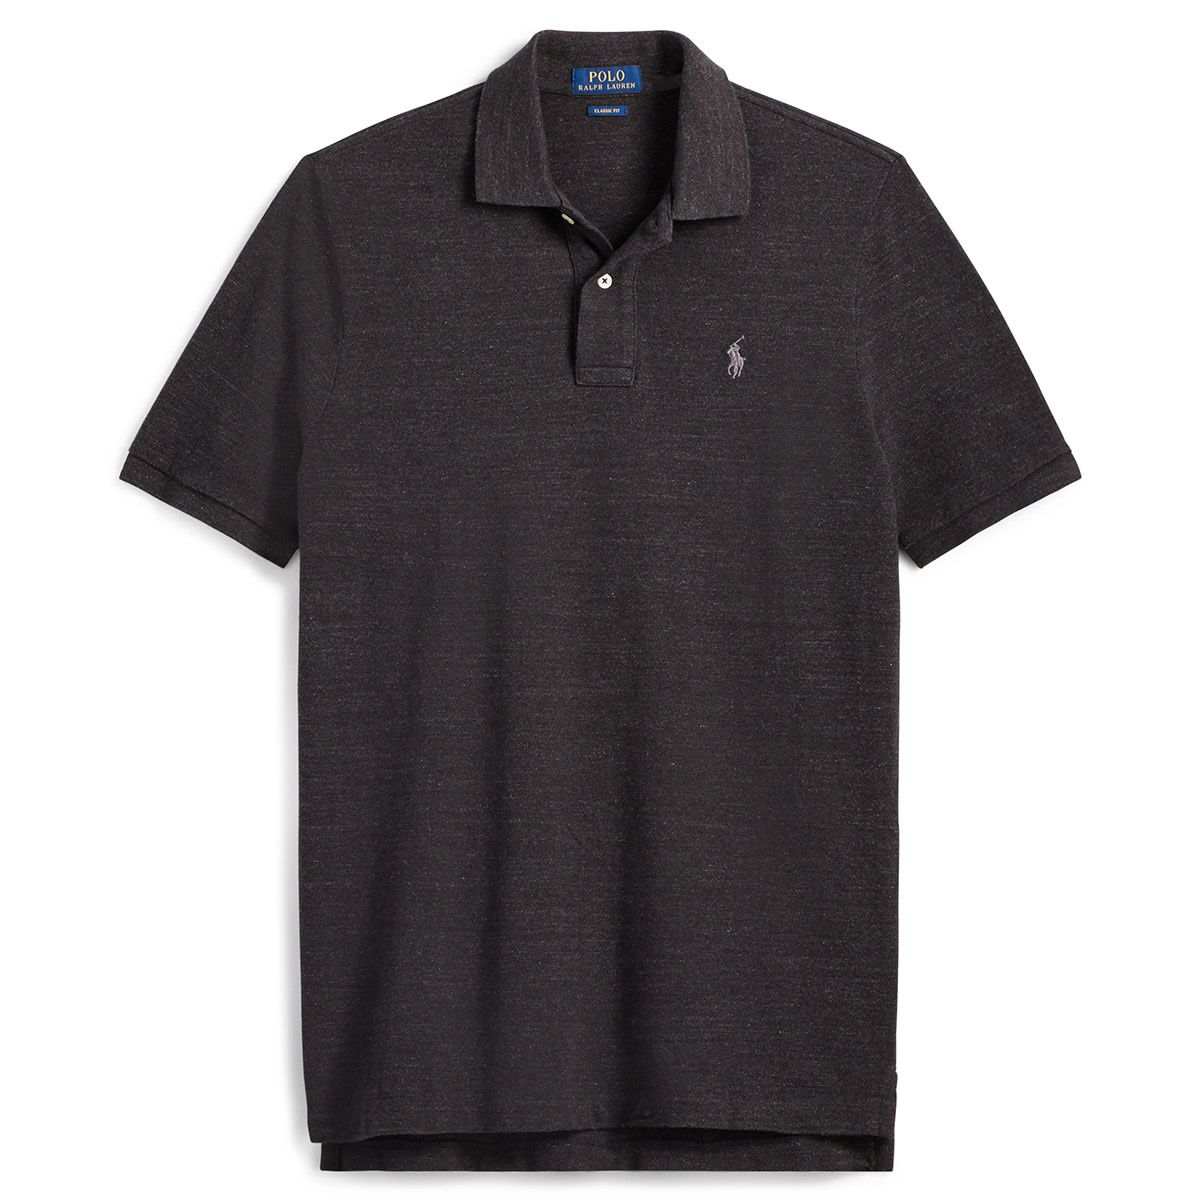 Polo Ralph Lauren Mens Polo Shirts - Macy s d73833c1fbe77